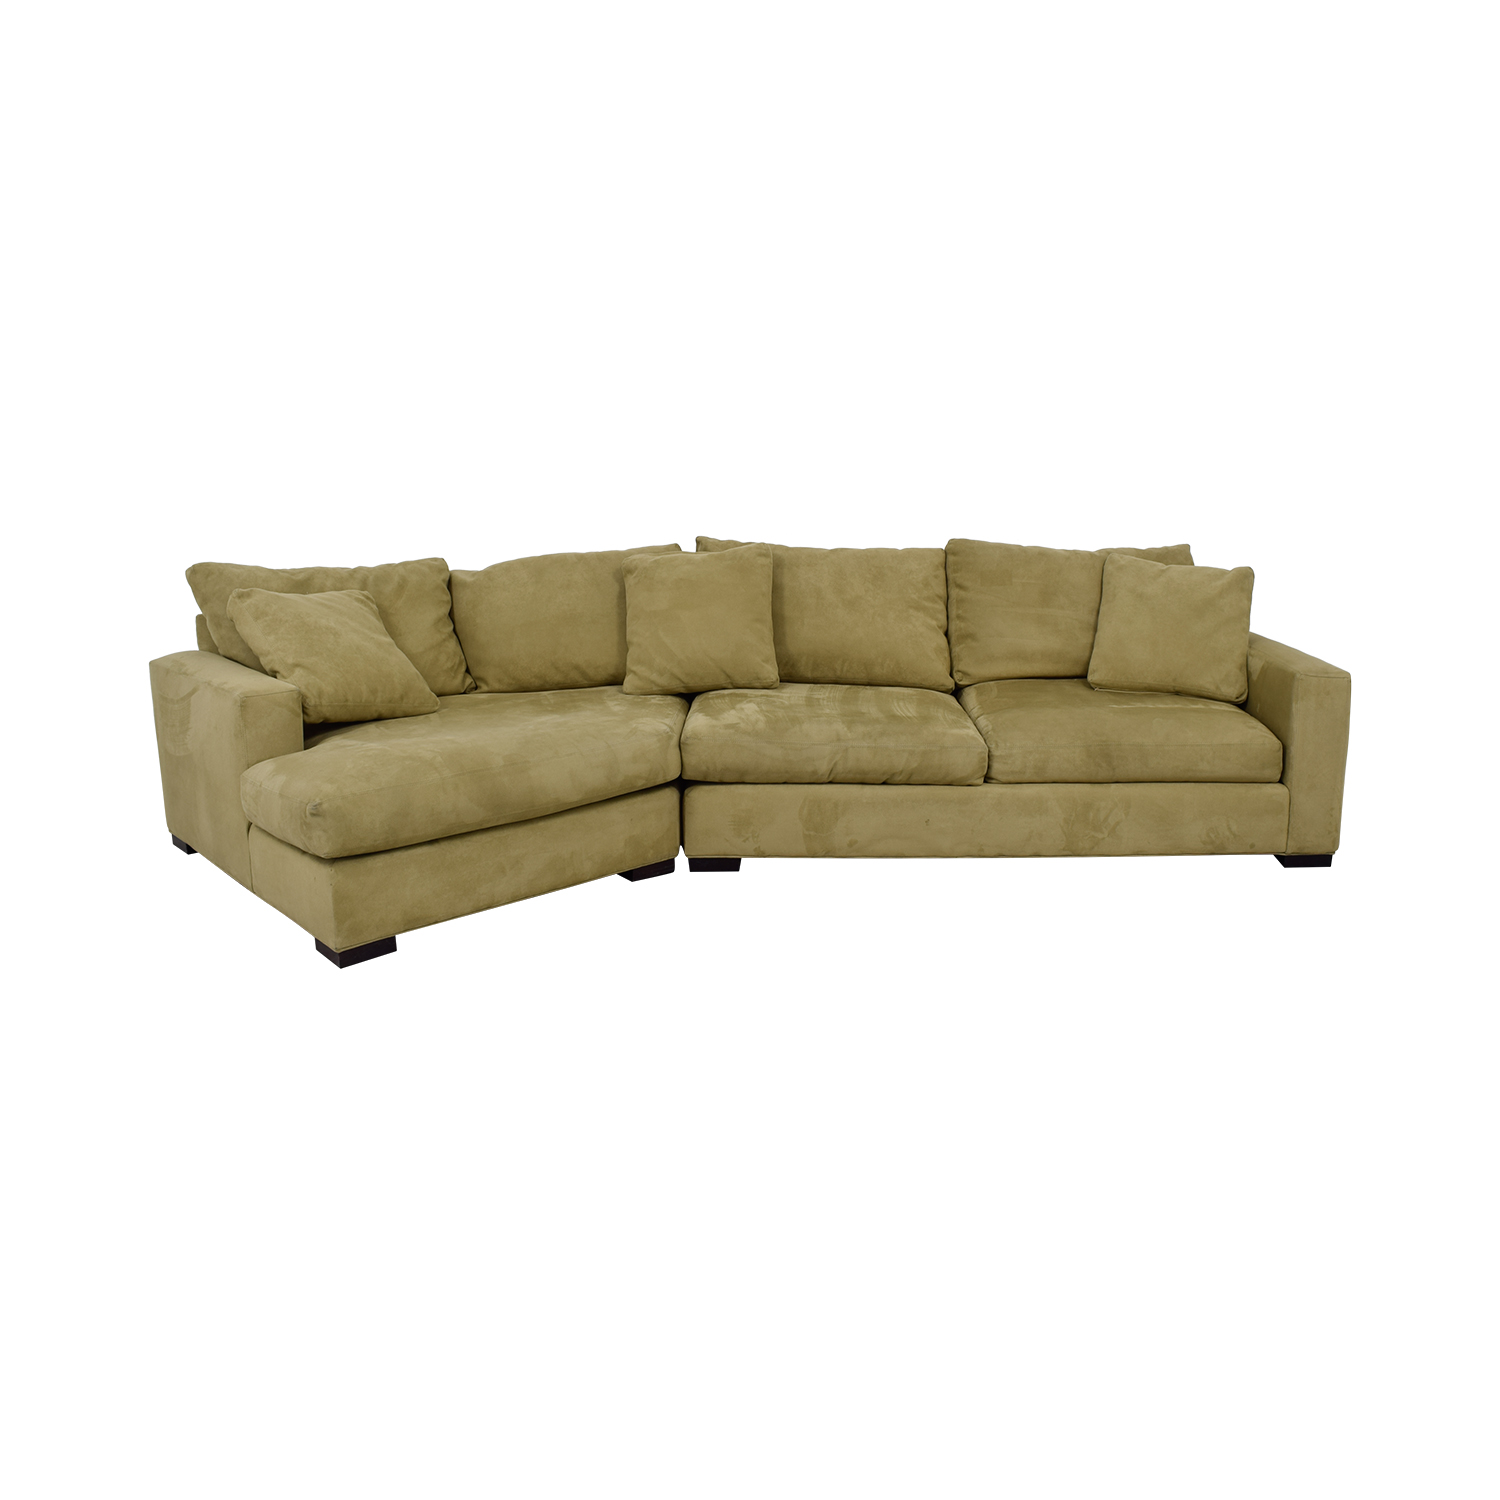 room and board metro sofa with chaise corner settee designs baci living